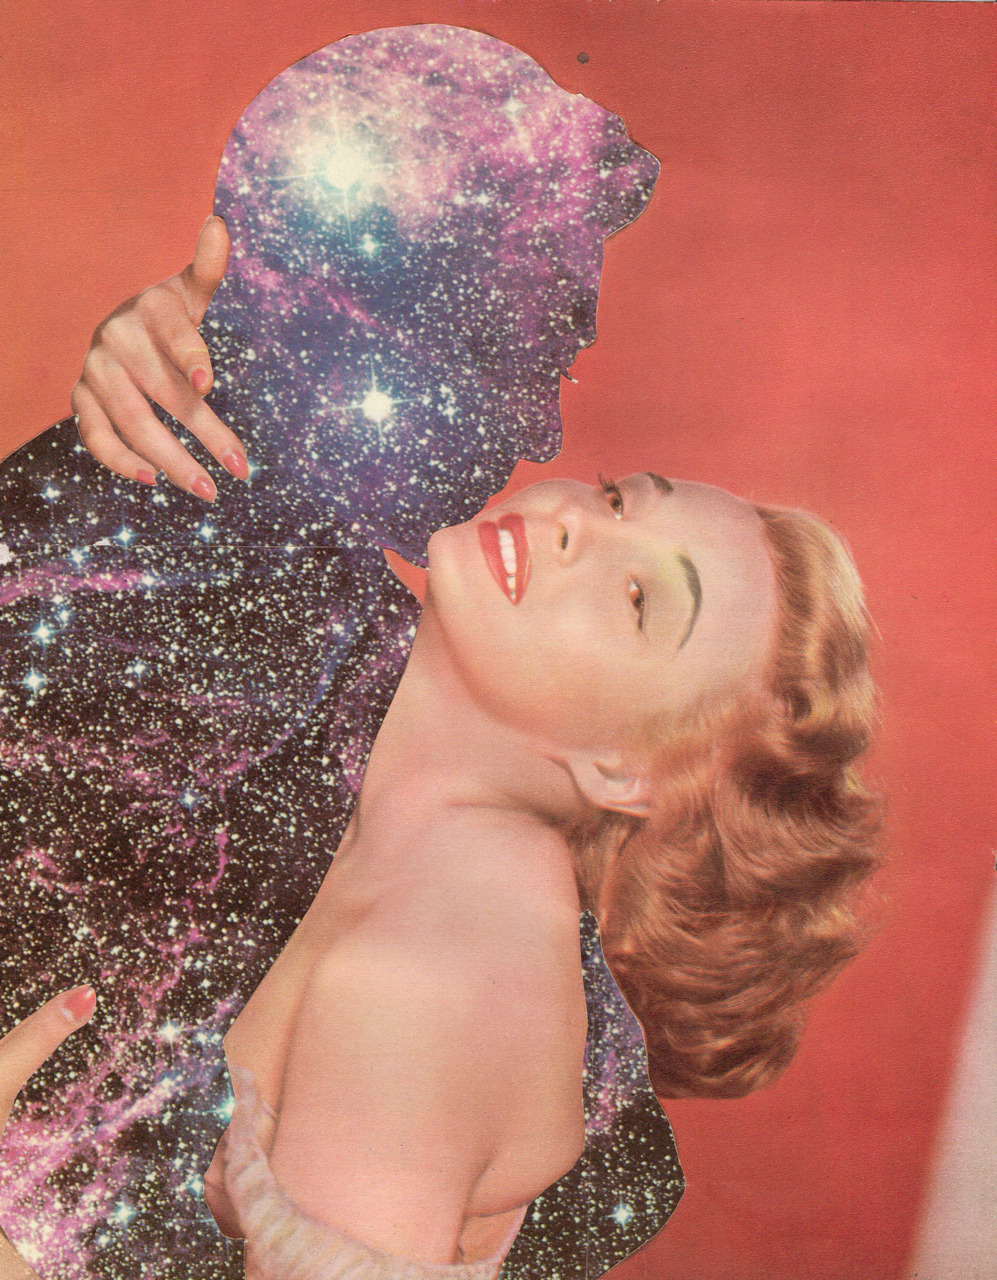 Definitely Cool!    saatchionline :     Antares and Love #2  Collage  by Joe Webb  Lewes, UK  Print:   $20.00